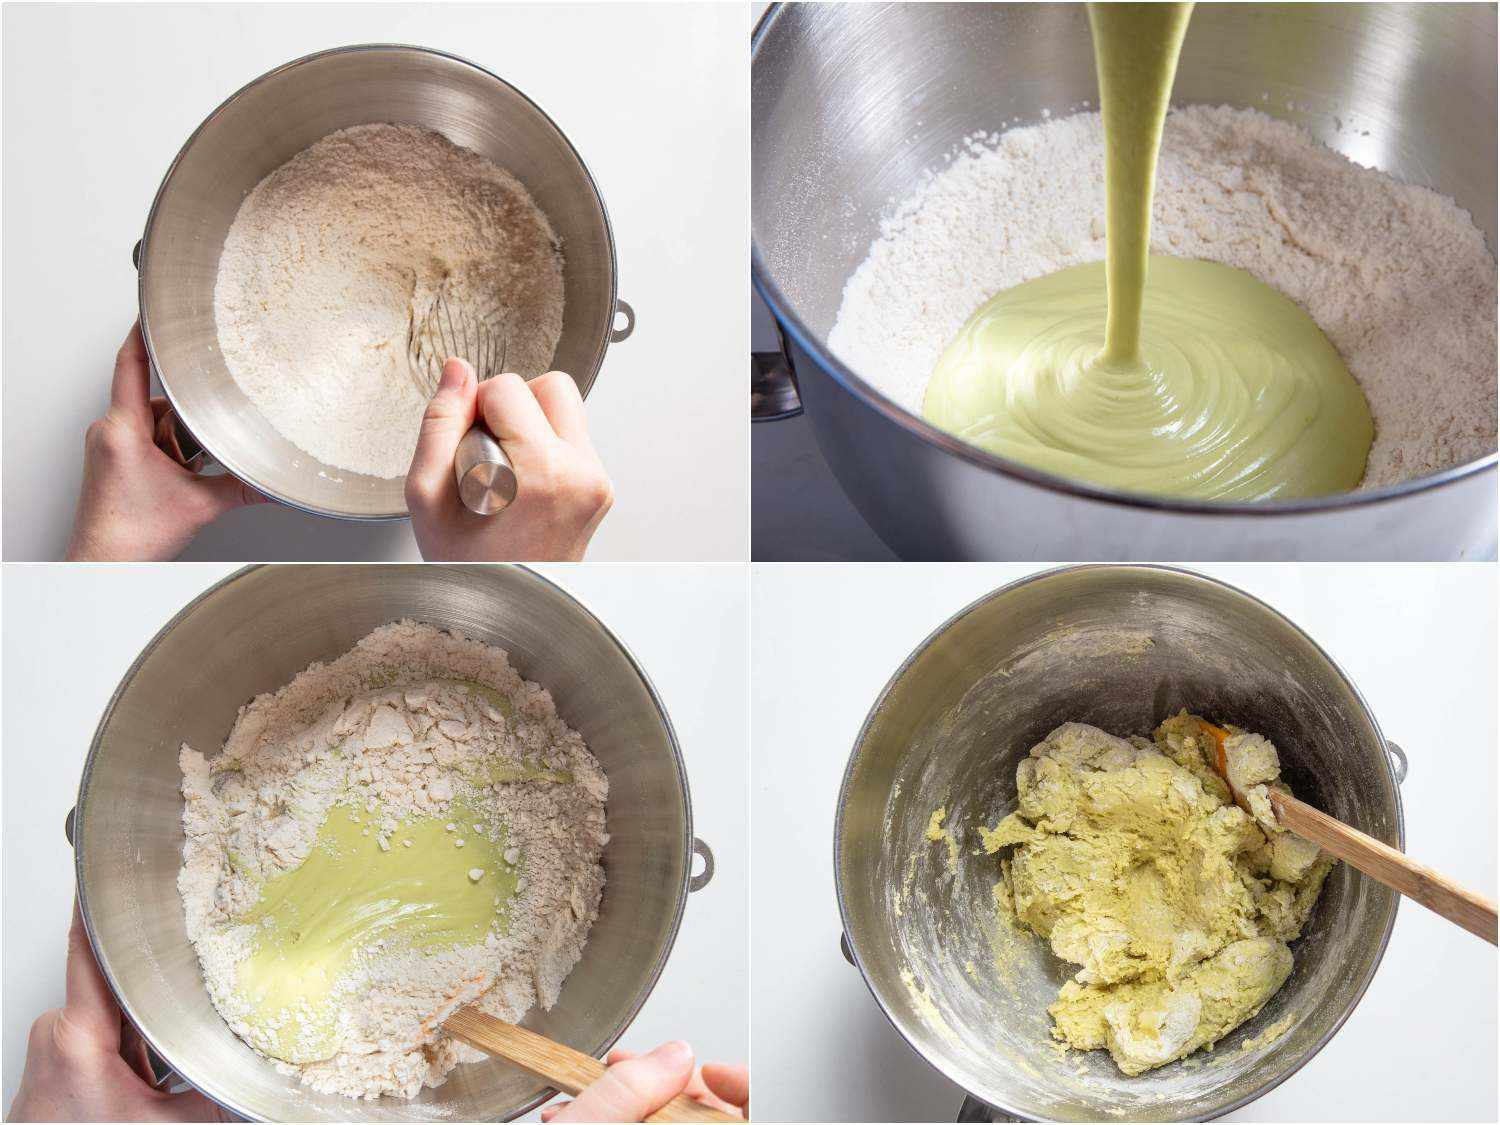 incorporating wet and dry ingredients to form a dry and shaggy dough